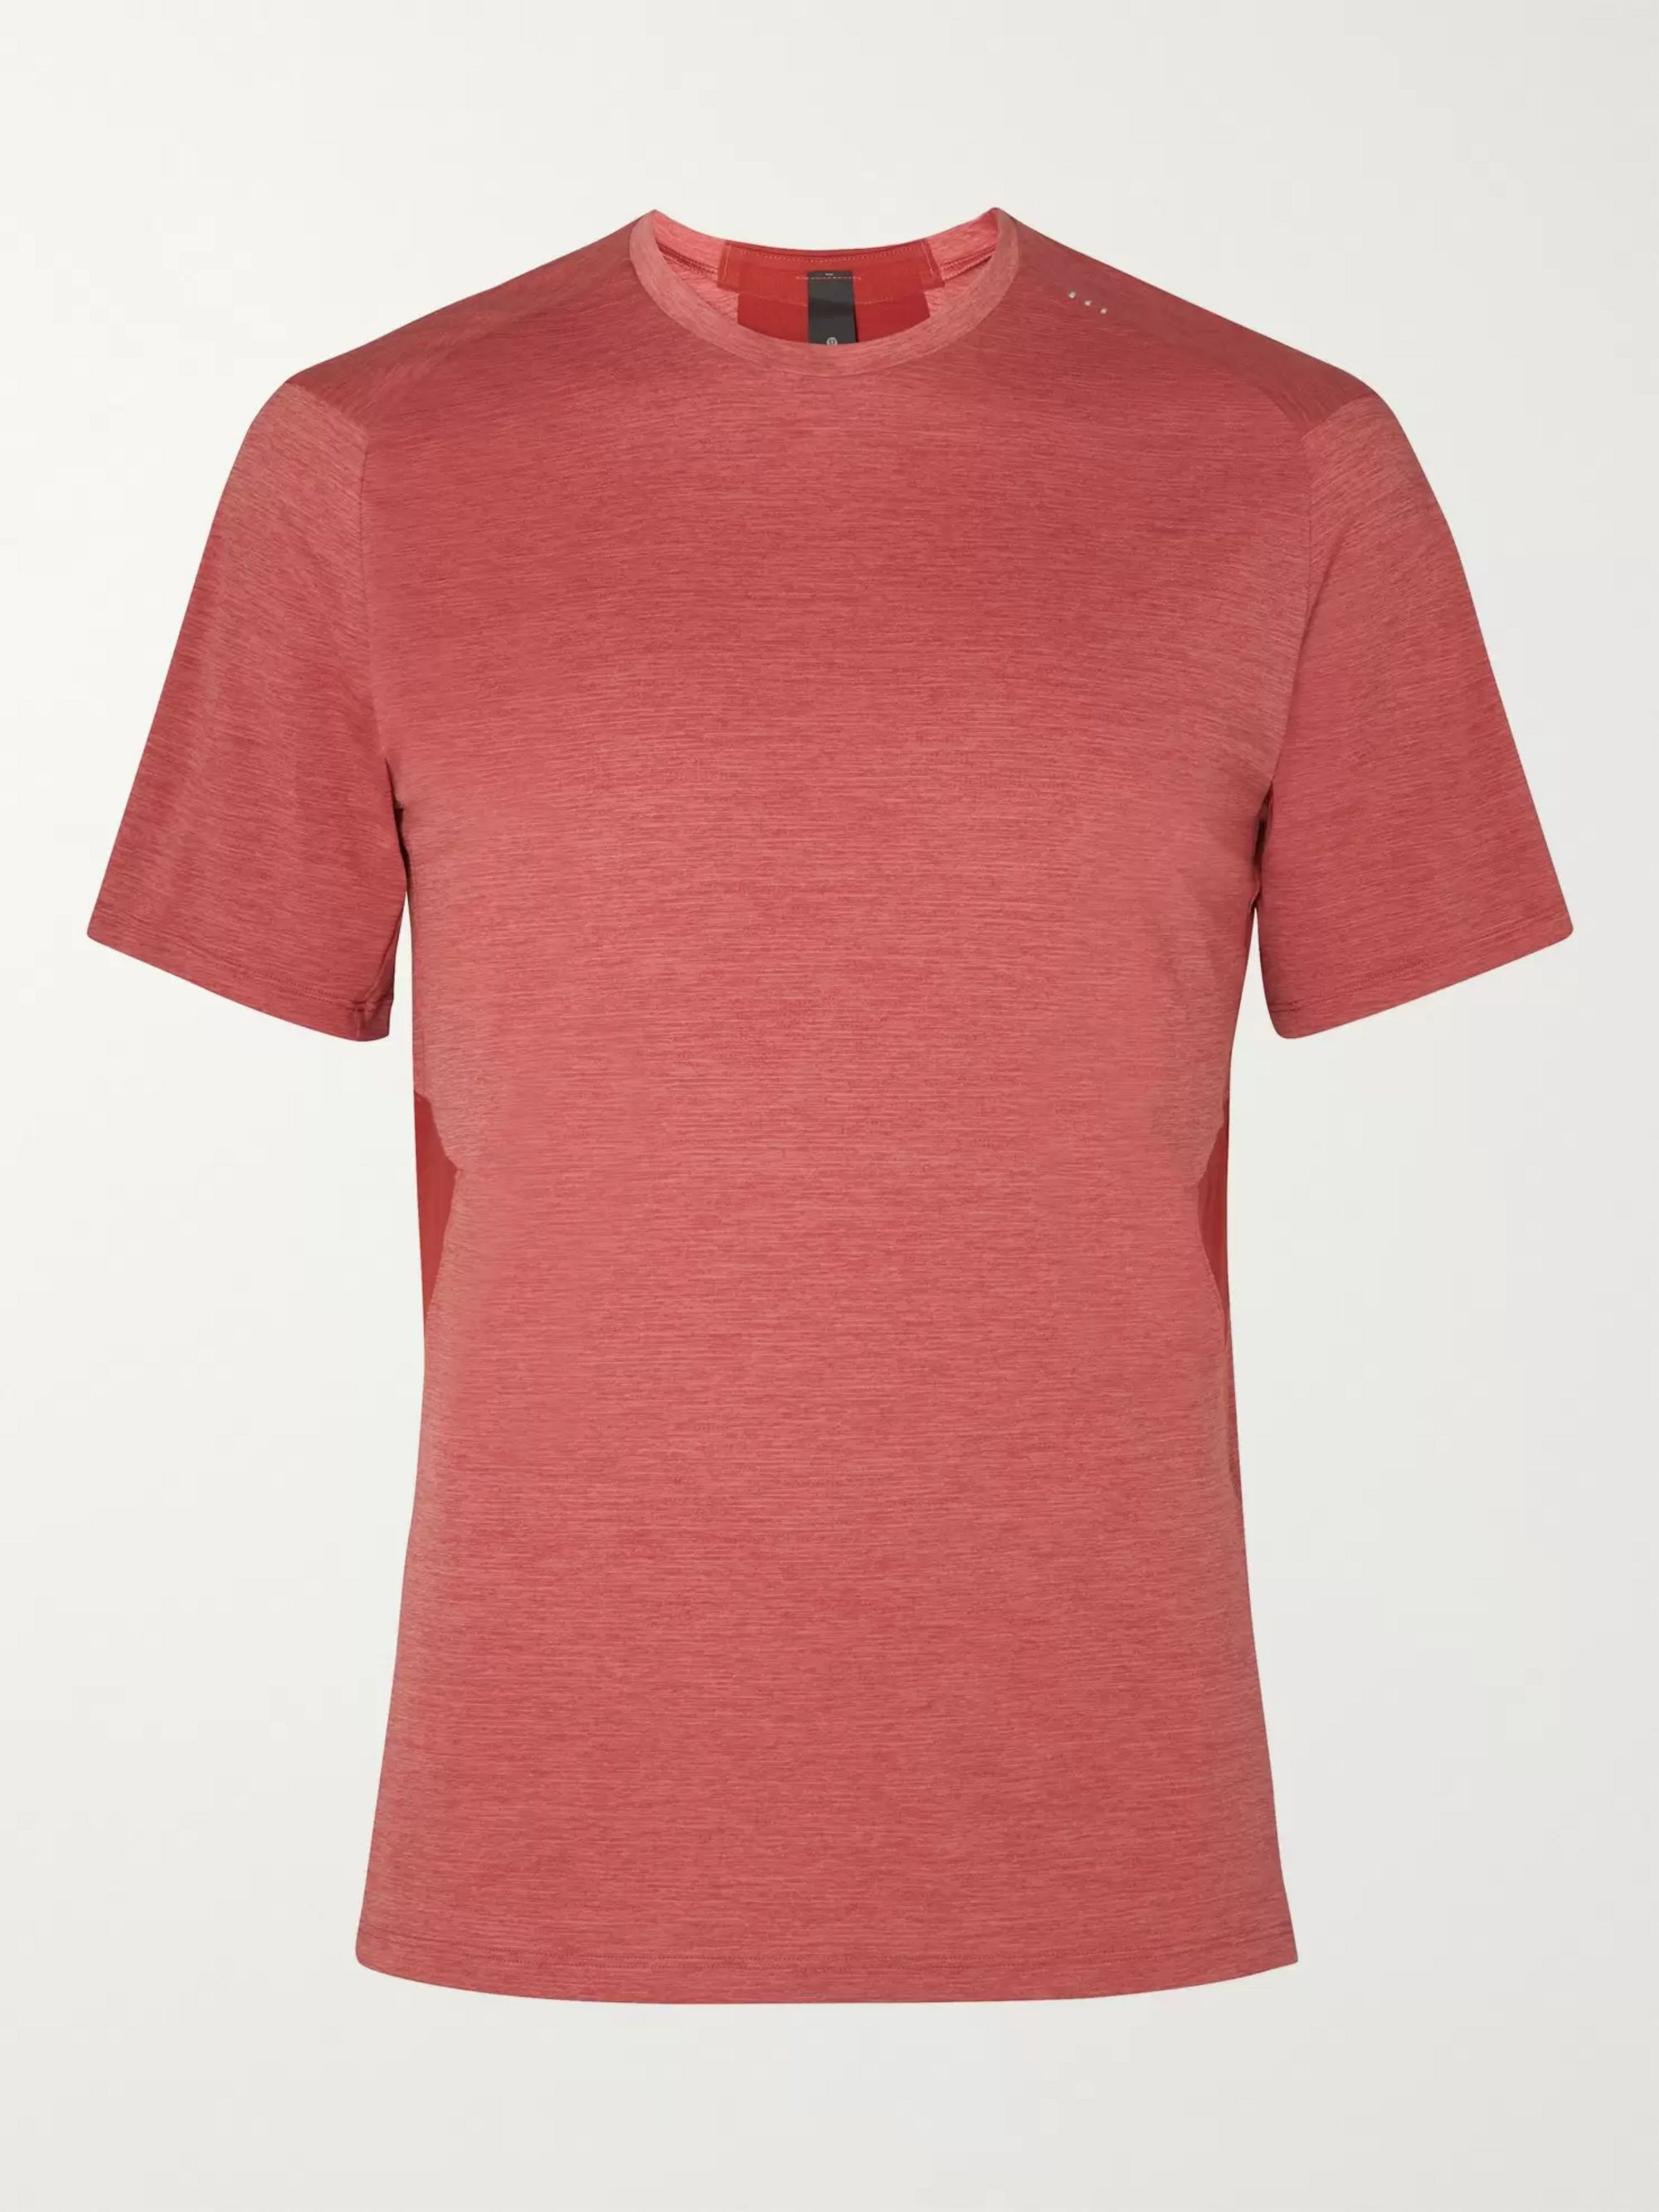 Lululemon Run on Air T-Shirt